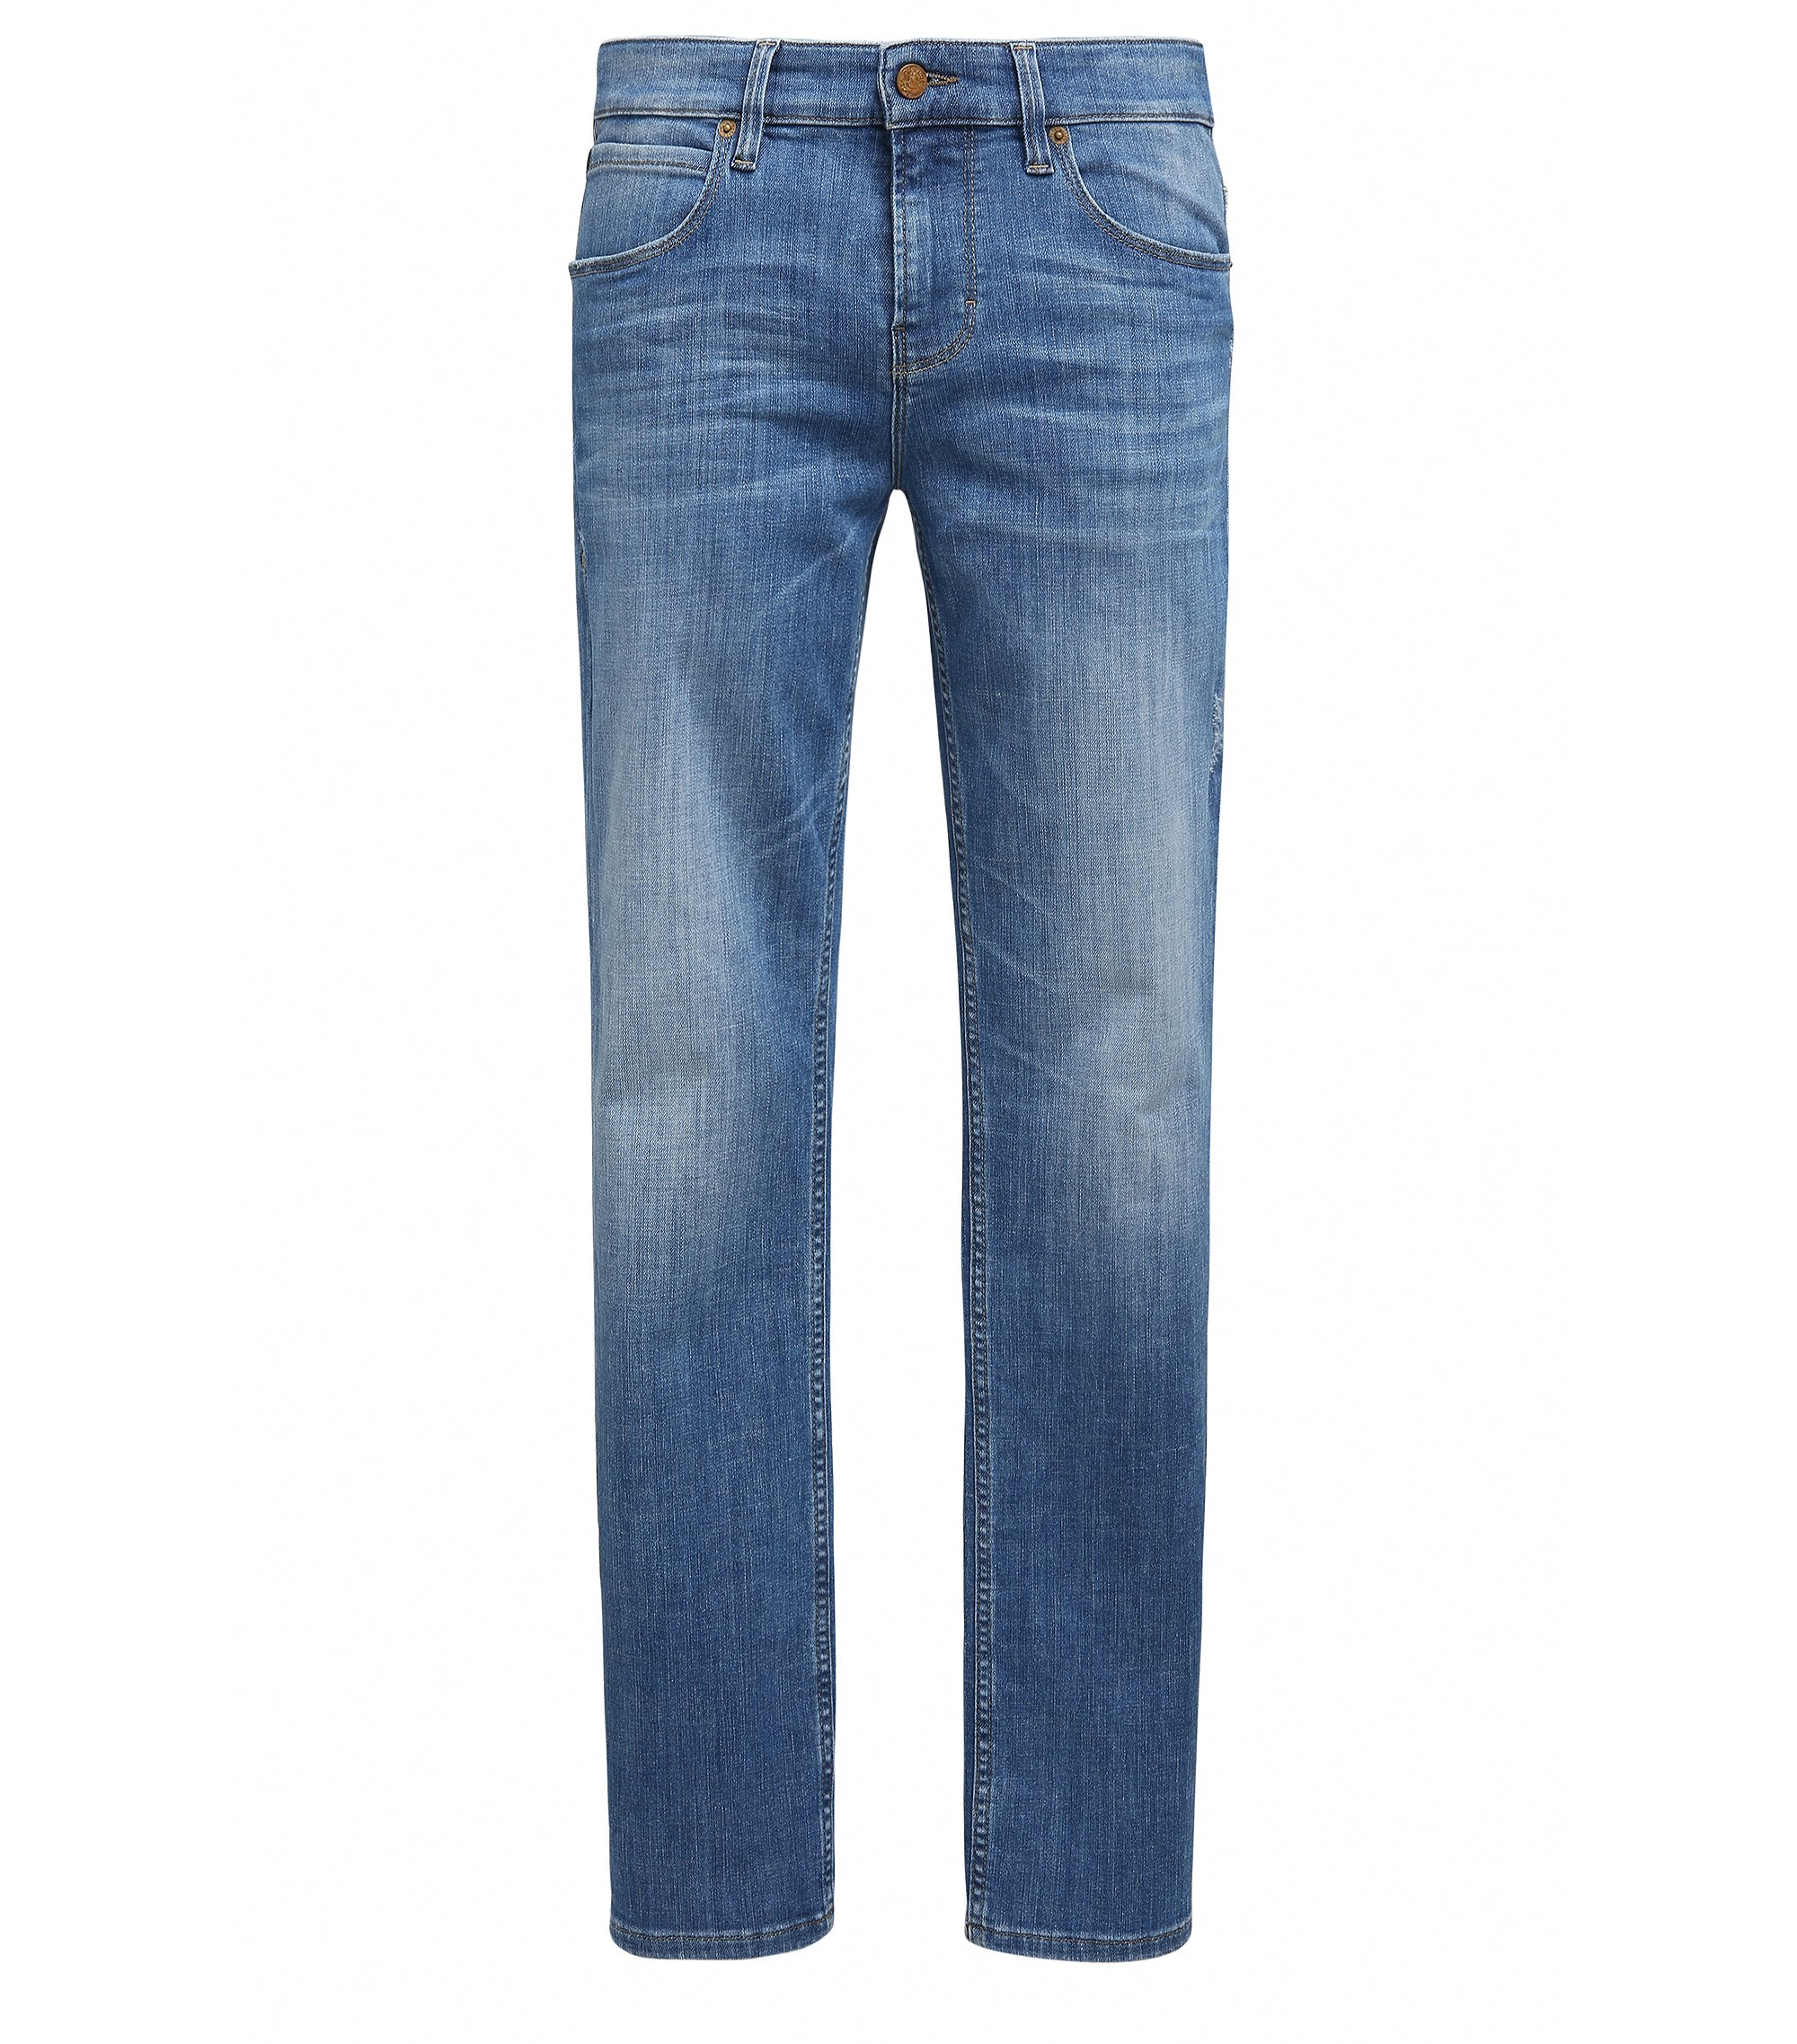 Stone Wash Stretch Cotton Jean, Slim Leg | Orange63, Blue